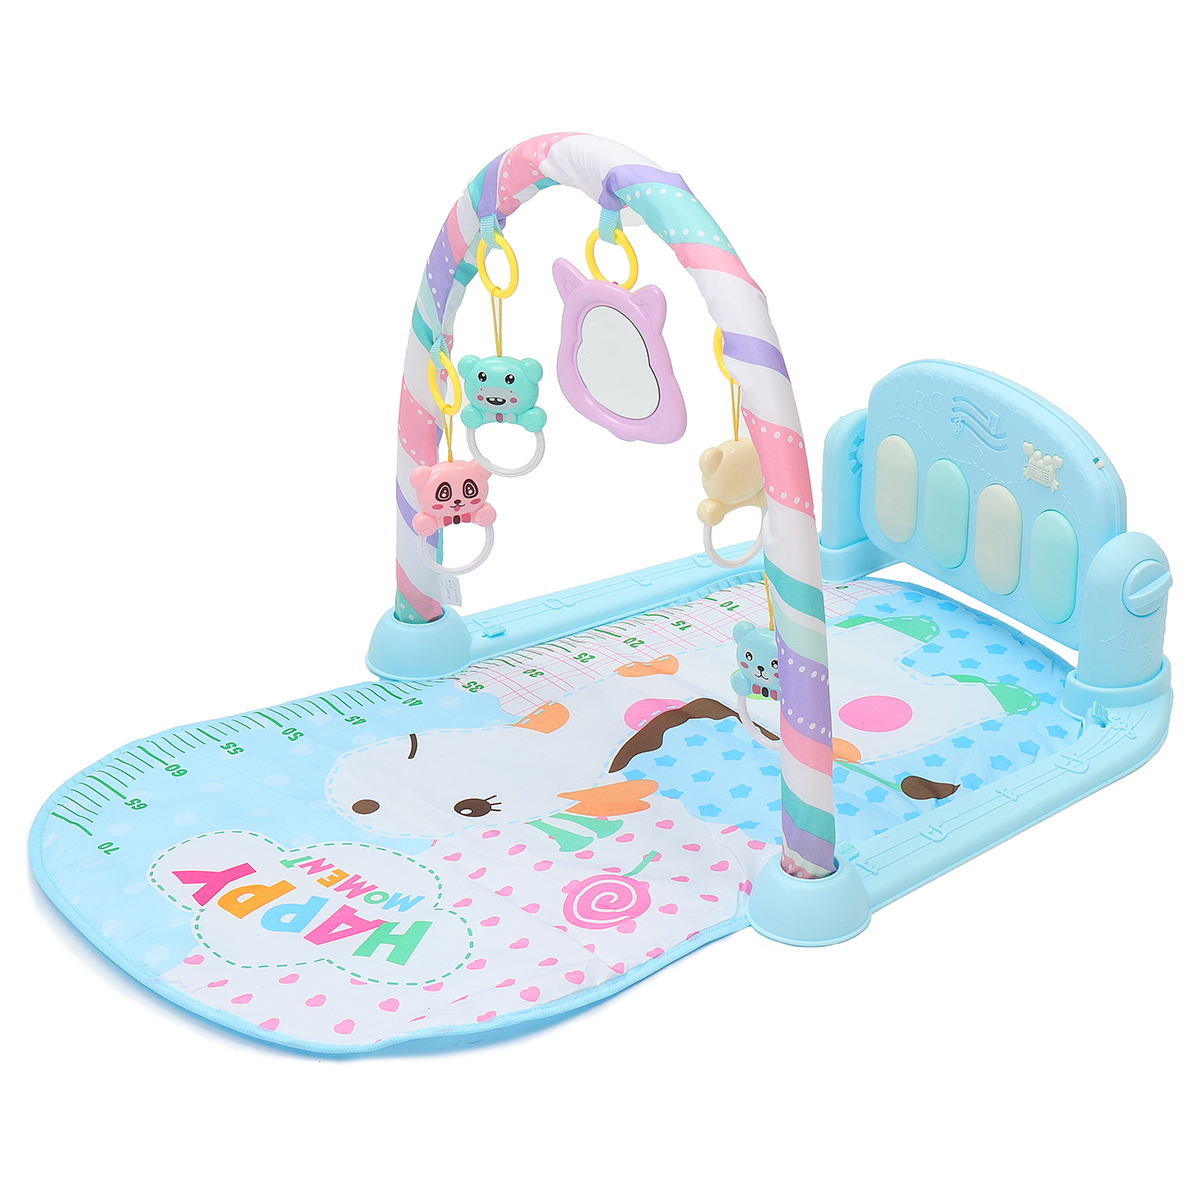 Baby Play Mat Gym Fitness Music Lights Fun Piano Boy Girl Rack Early Education